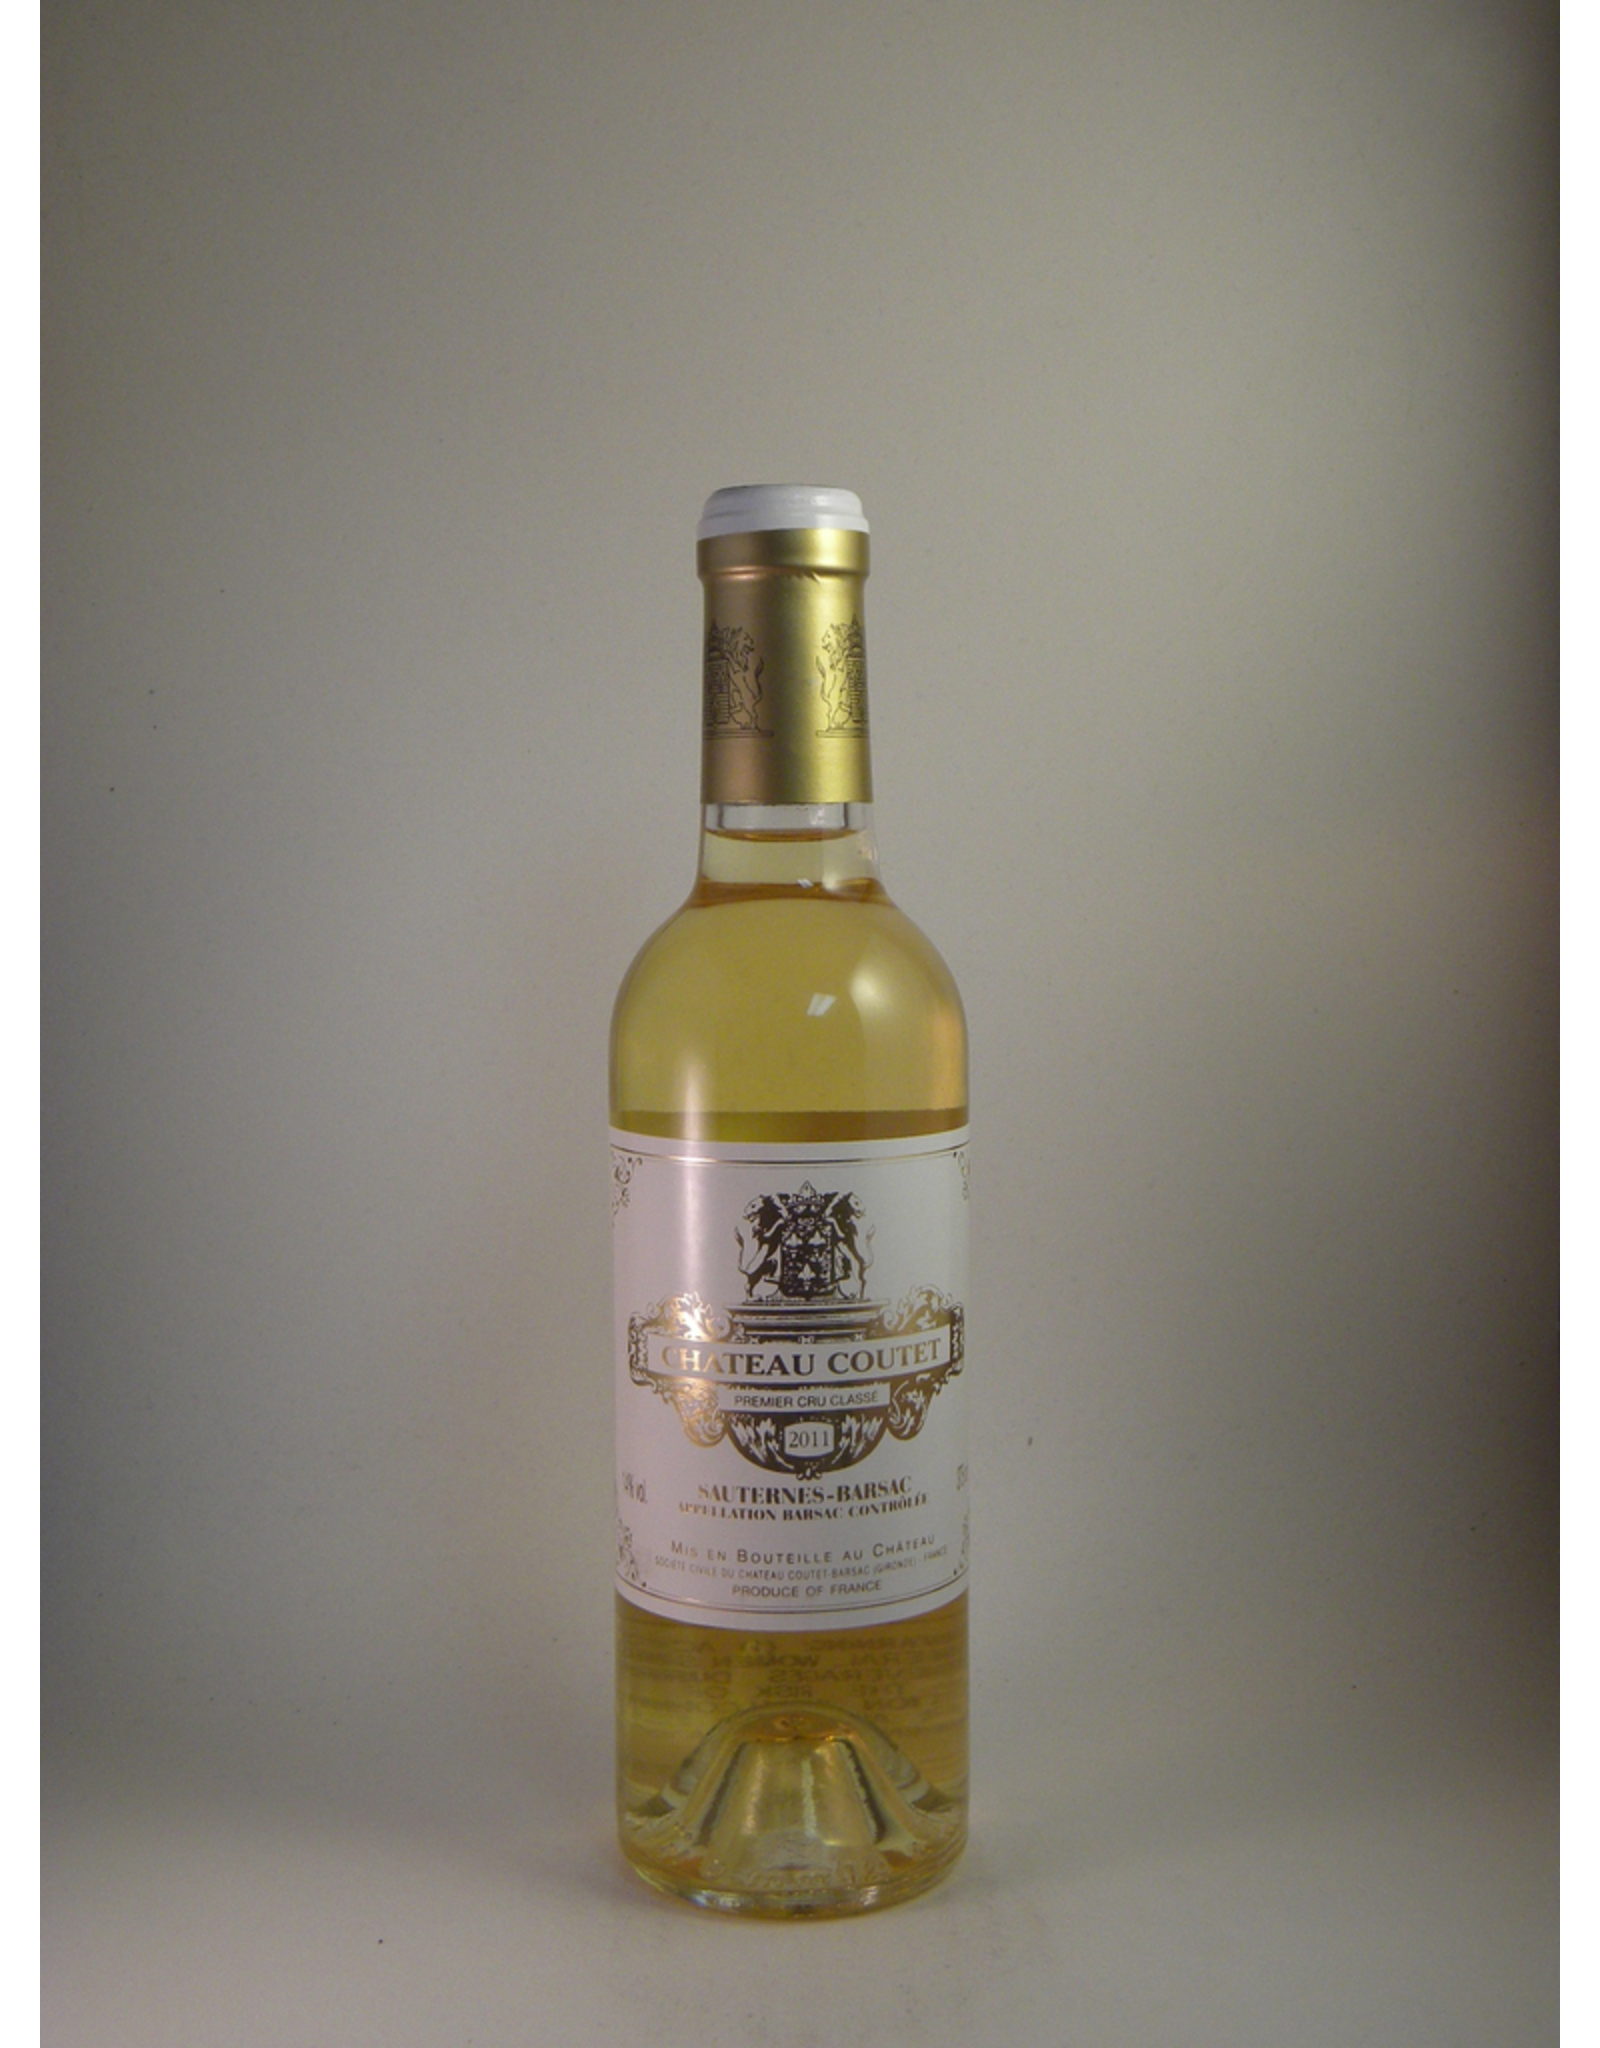 Chateau Coutet Barsac 2016 375ml